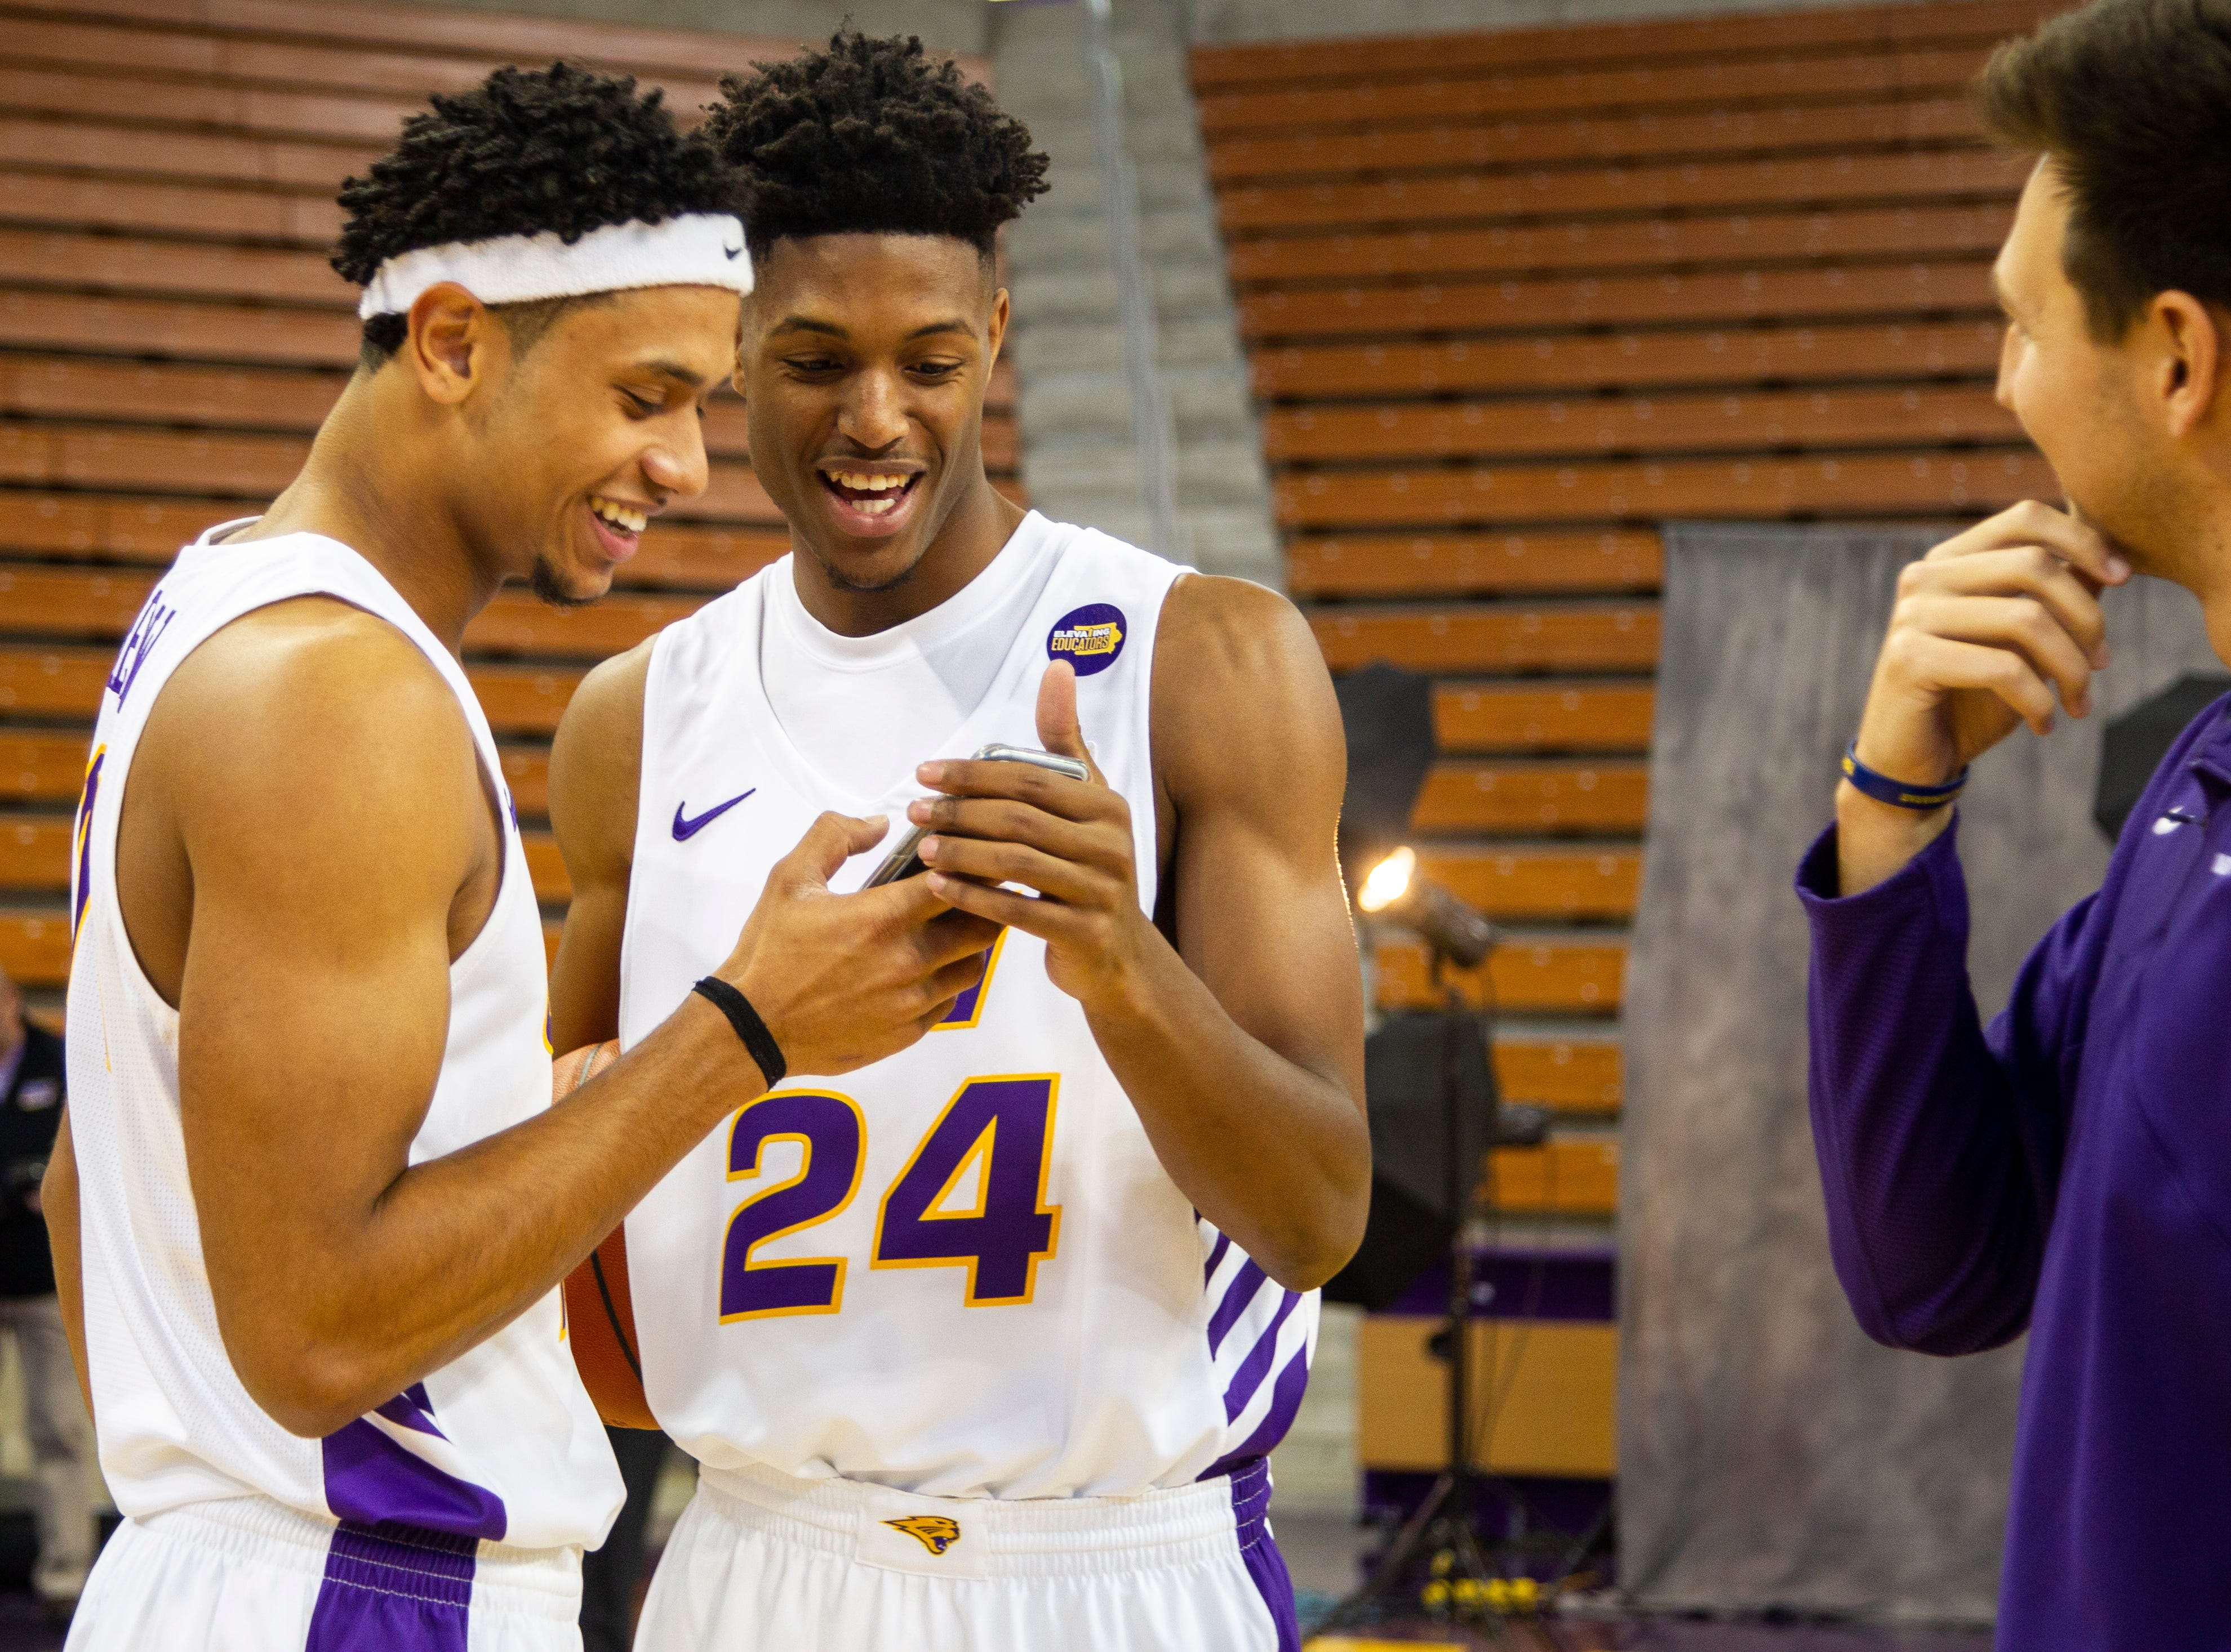 Northern Iowa guard Isaiah Brown (24) looks at a photo with Trae Berhow (11) during Panthers men's basketball media day on Wednesday, Oct. 17, 2018, at the McLeod Center in Cedar Falls.